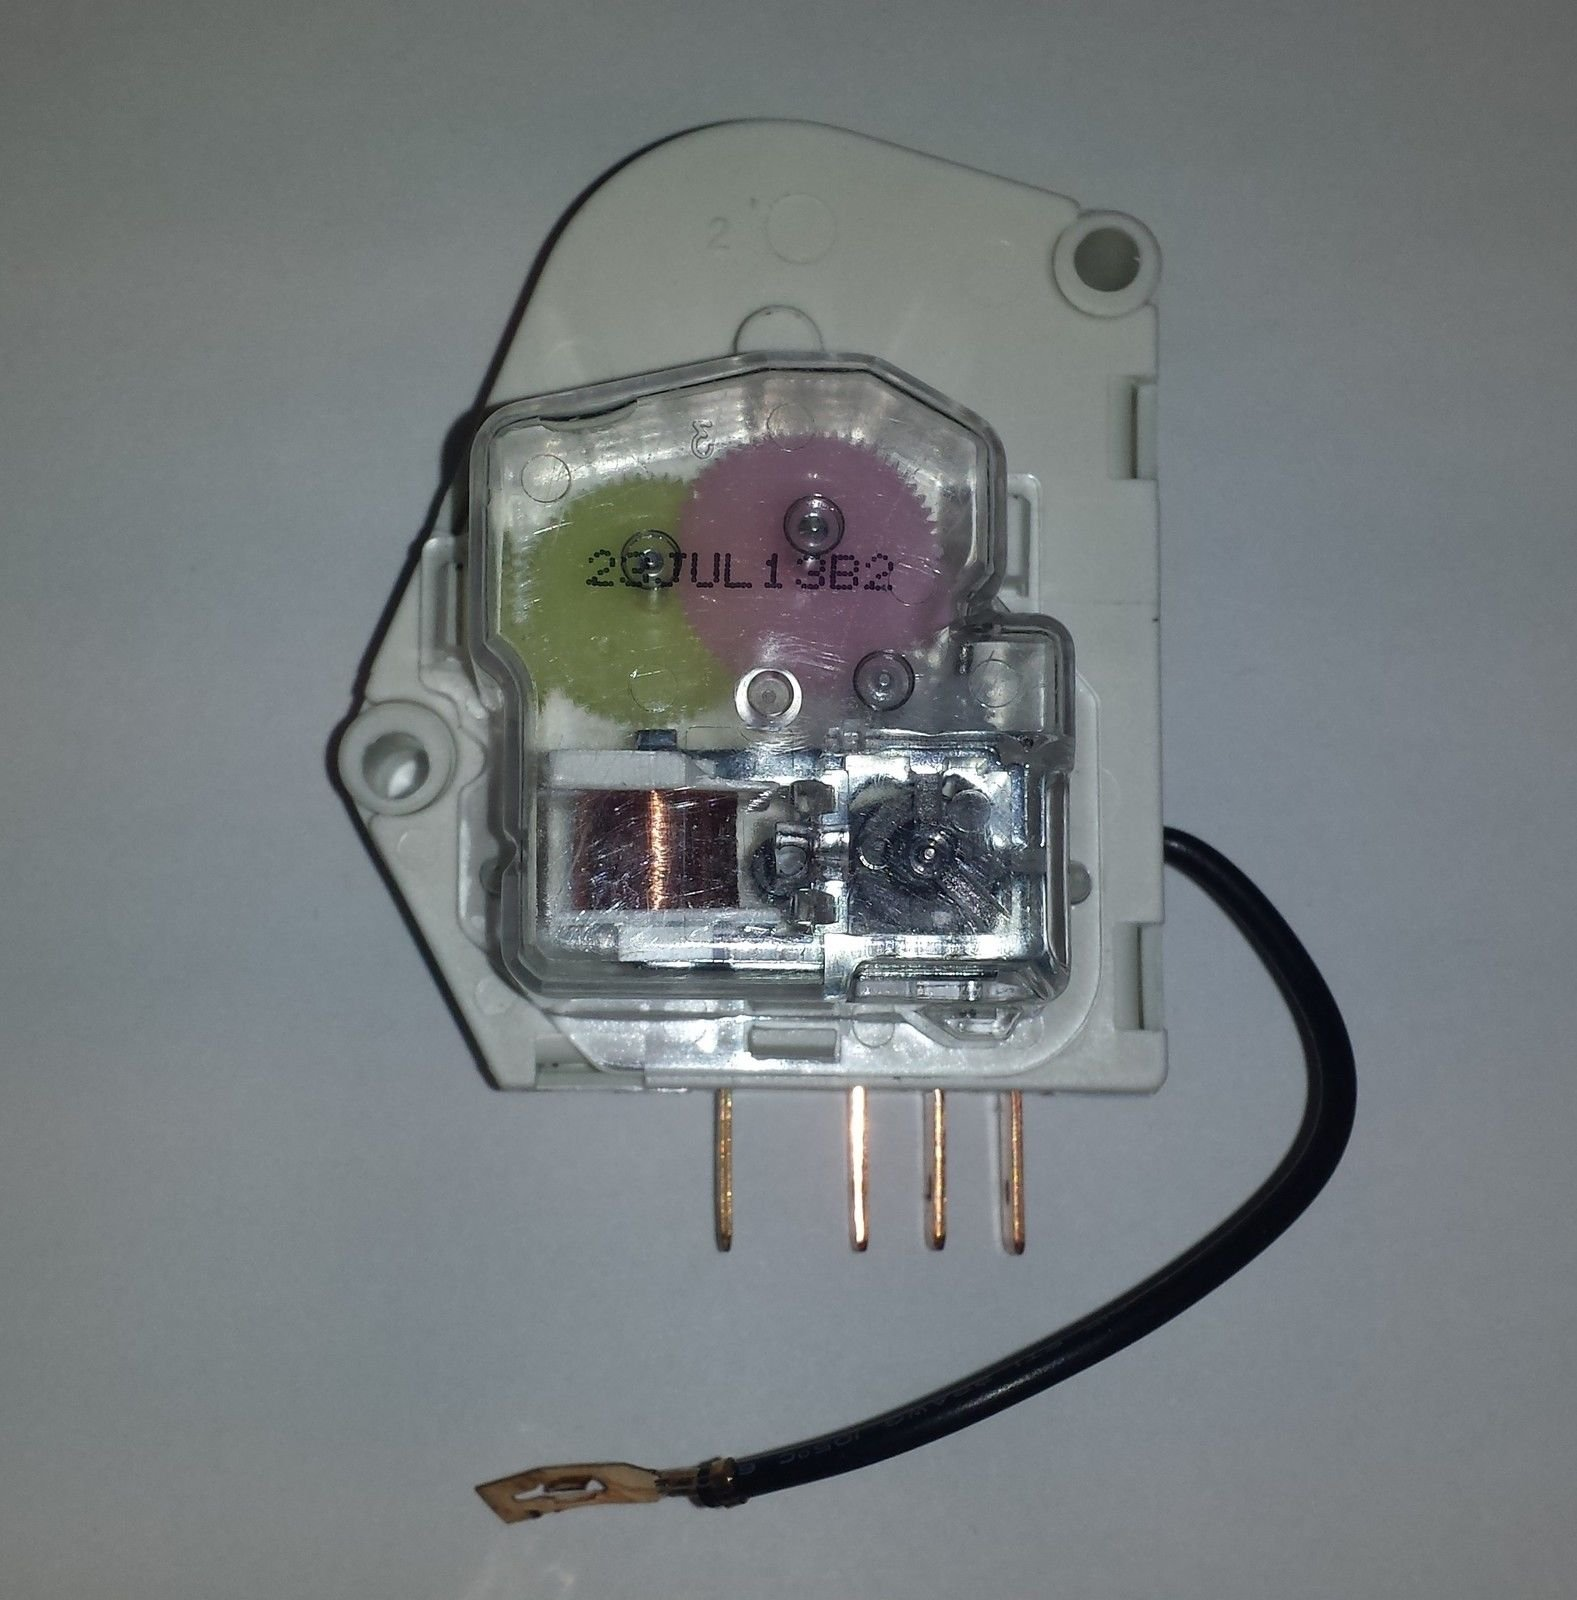 NEW - Refrigerator Defrost Timer for Whirlpool Sears 482493 483212